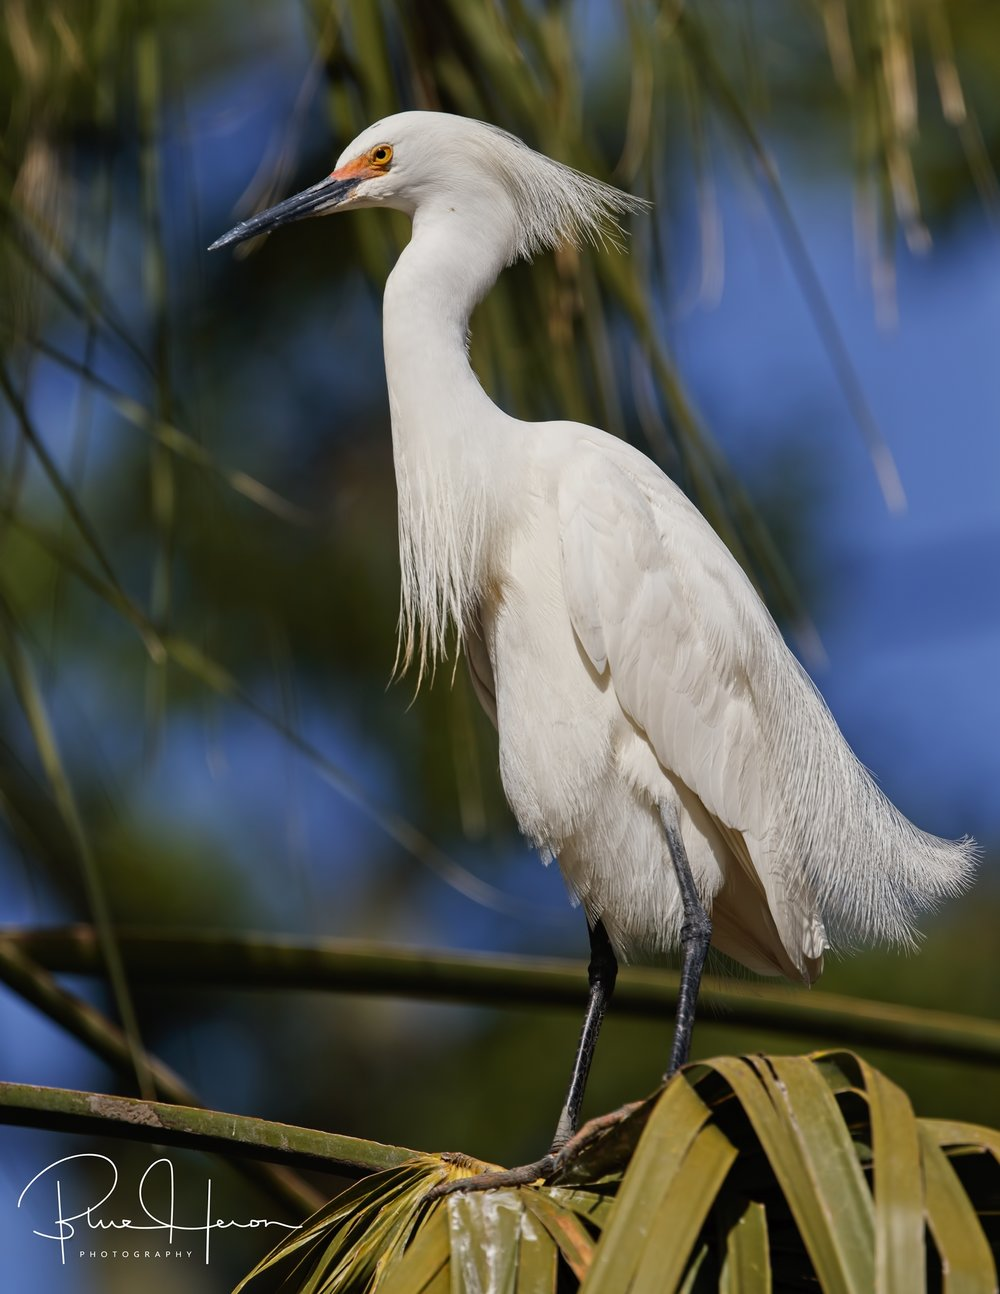 The Snowy Egrets were in full display mode also showing breeding plumes and red eye coloration